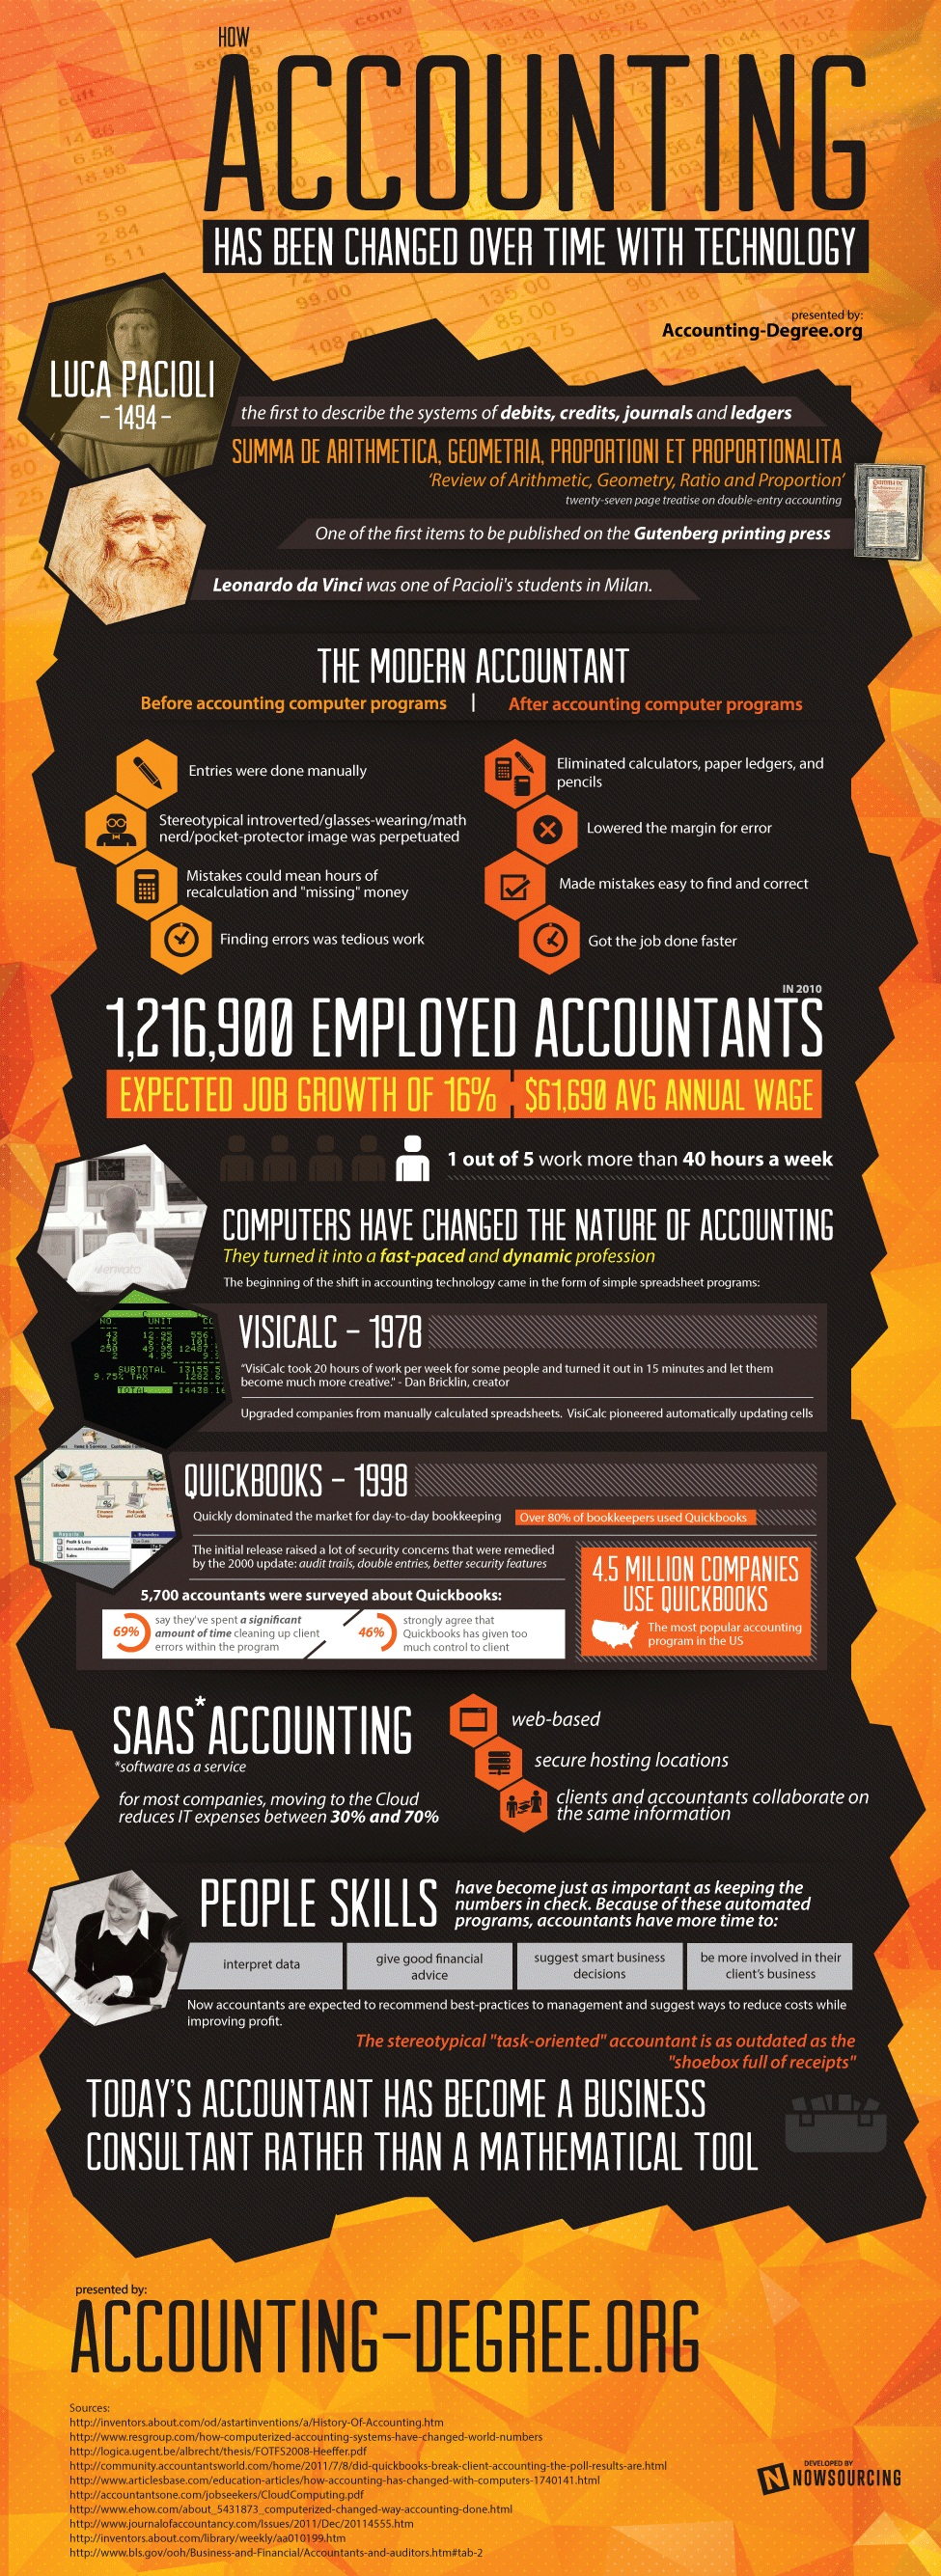 How Technology Changed Accounting from 1494 to 2013